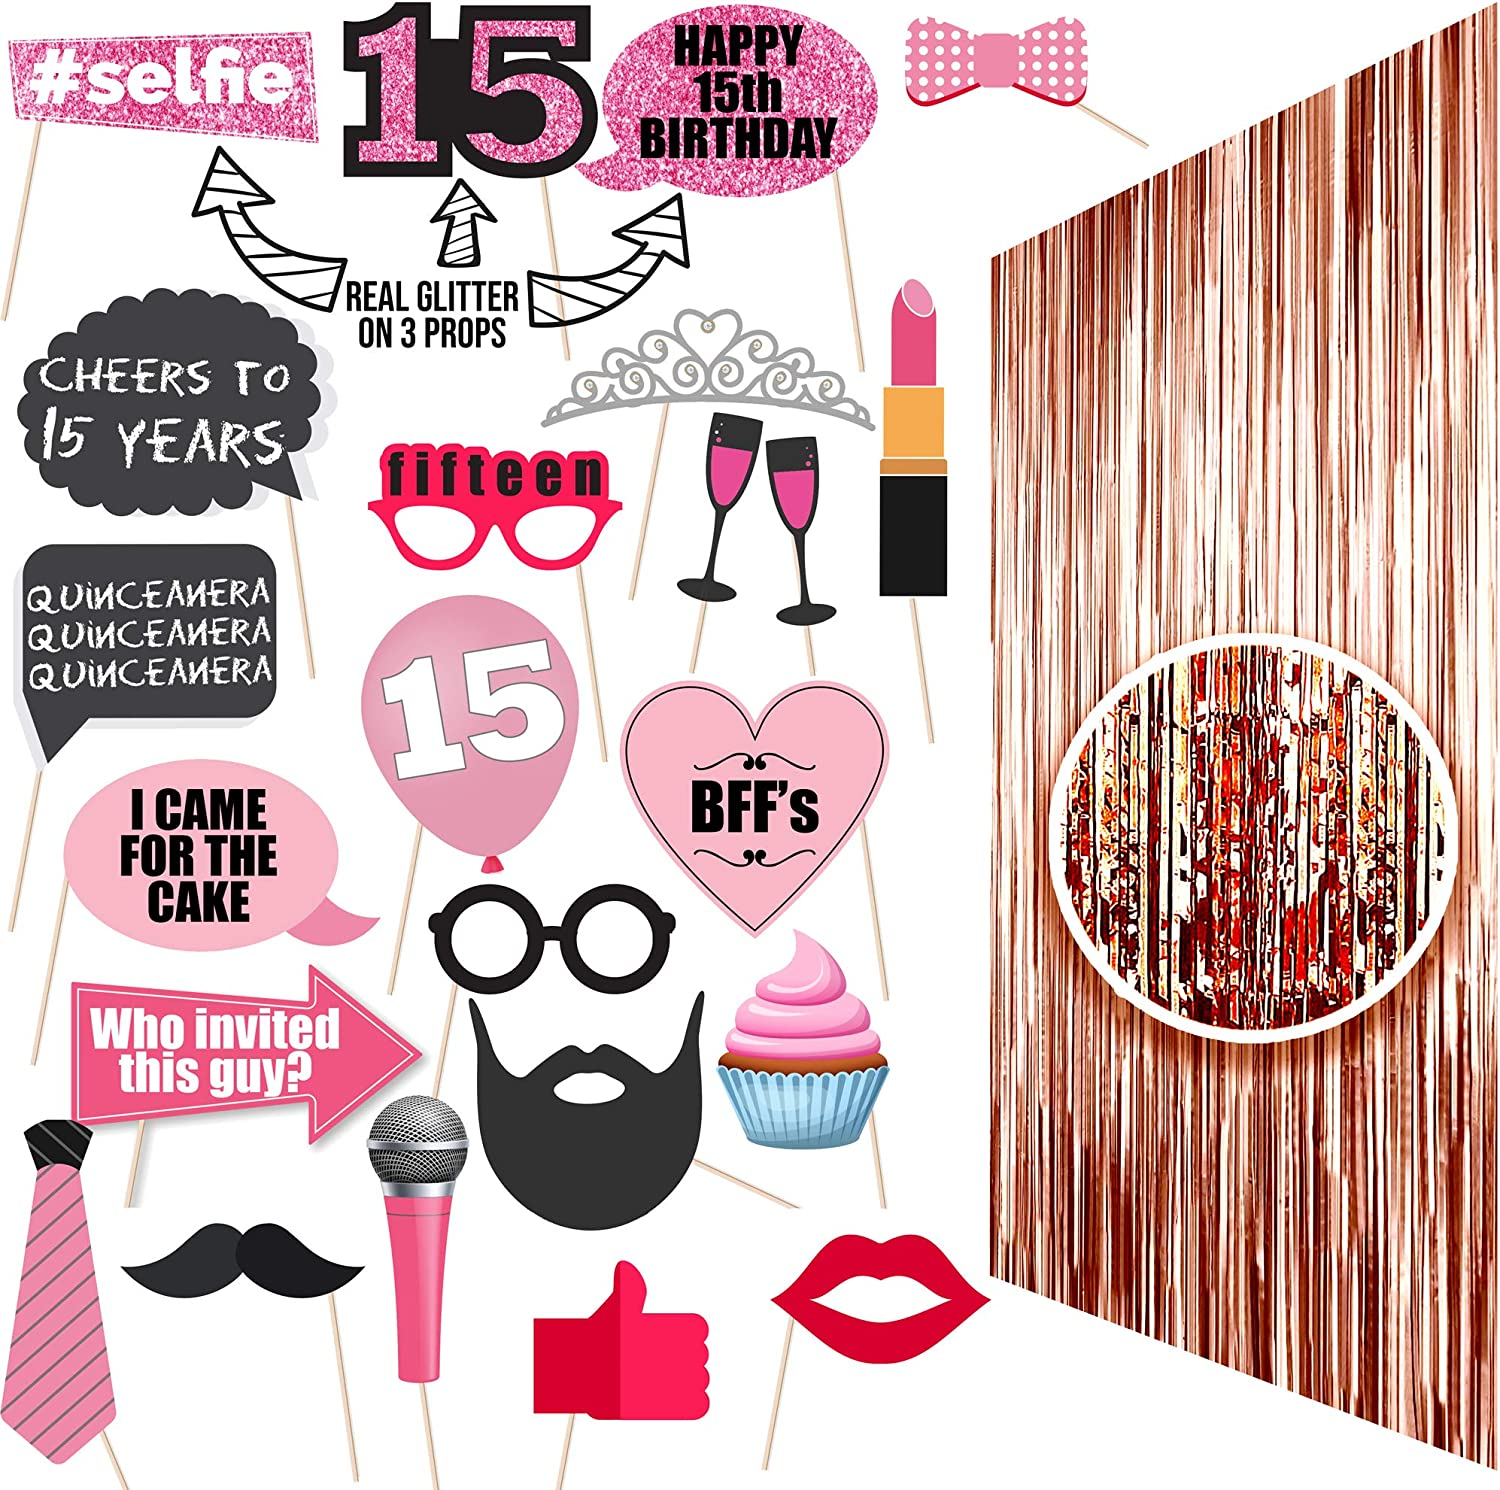 15th BIRTHDAY Photo Props| 15 Birthday Party Supplies| 15 Photo Booth Quinceanera | Backdrop Props or Photos 15th Birthday Decorations| Party Ideas Decor 15th Rose gold Photo Props Real glitter Fiesta